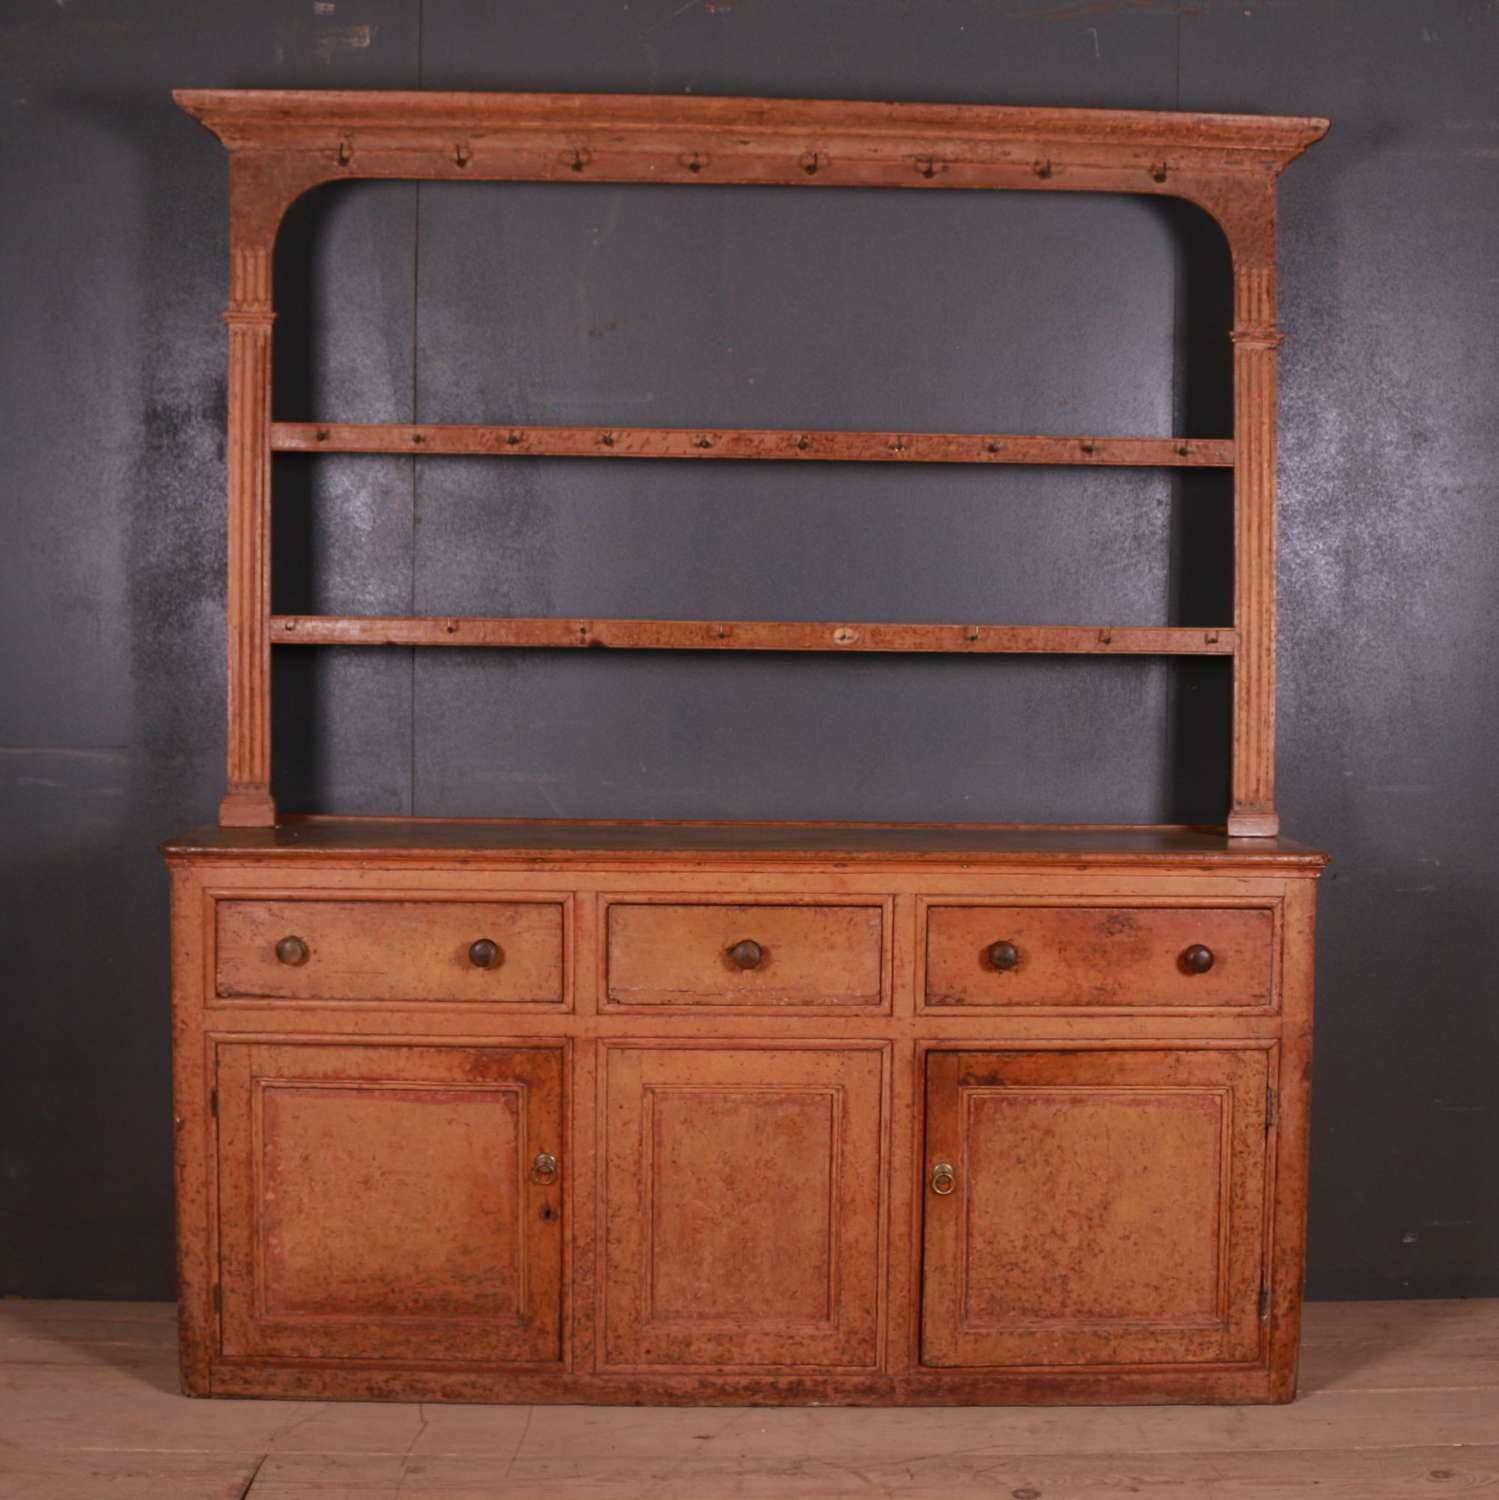 Original Painted West Country Dresser